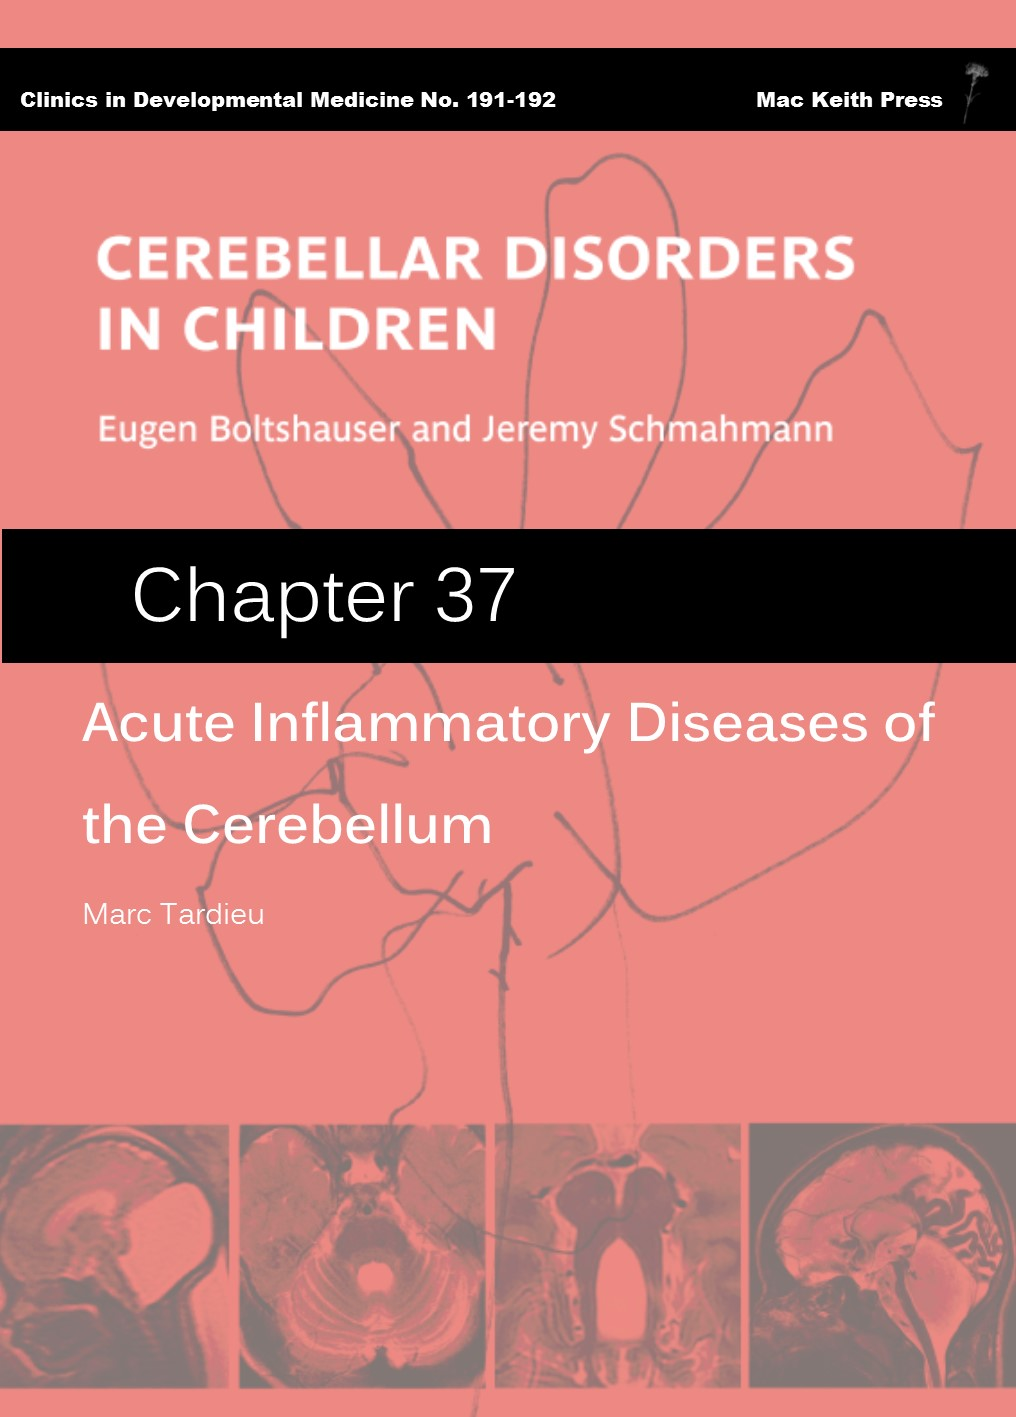 Acute Inflammatory Diseases of the Cerebellum - Cerebellar Disorders in Children (Chapter 37) COVER